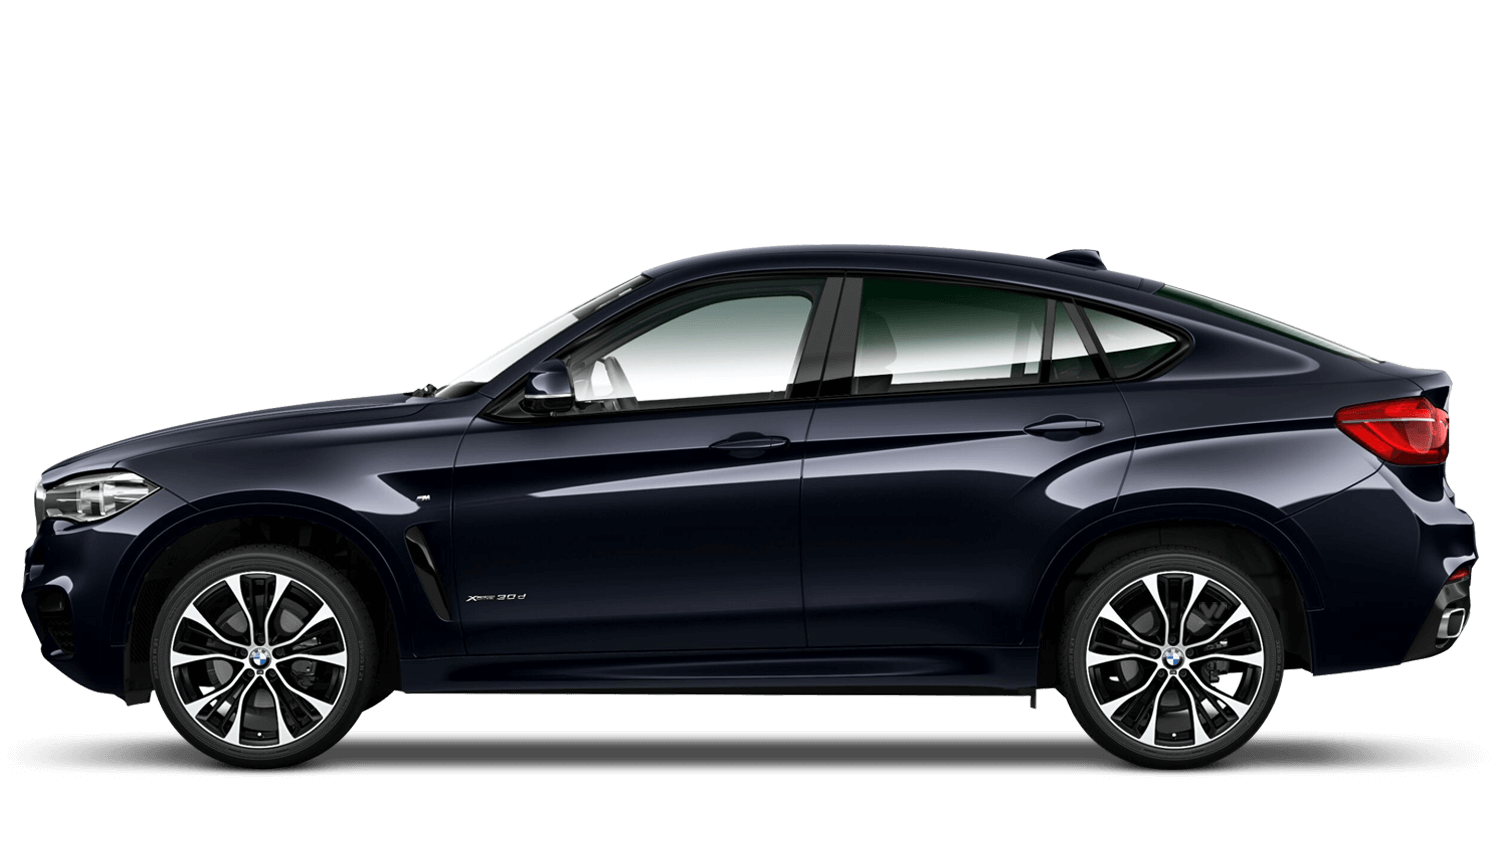 bmw x6 m sport edition finance available barons chandlers bmw. Black Bedroom Furniture Sets. Home Design Ideas